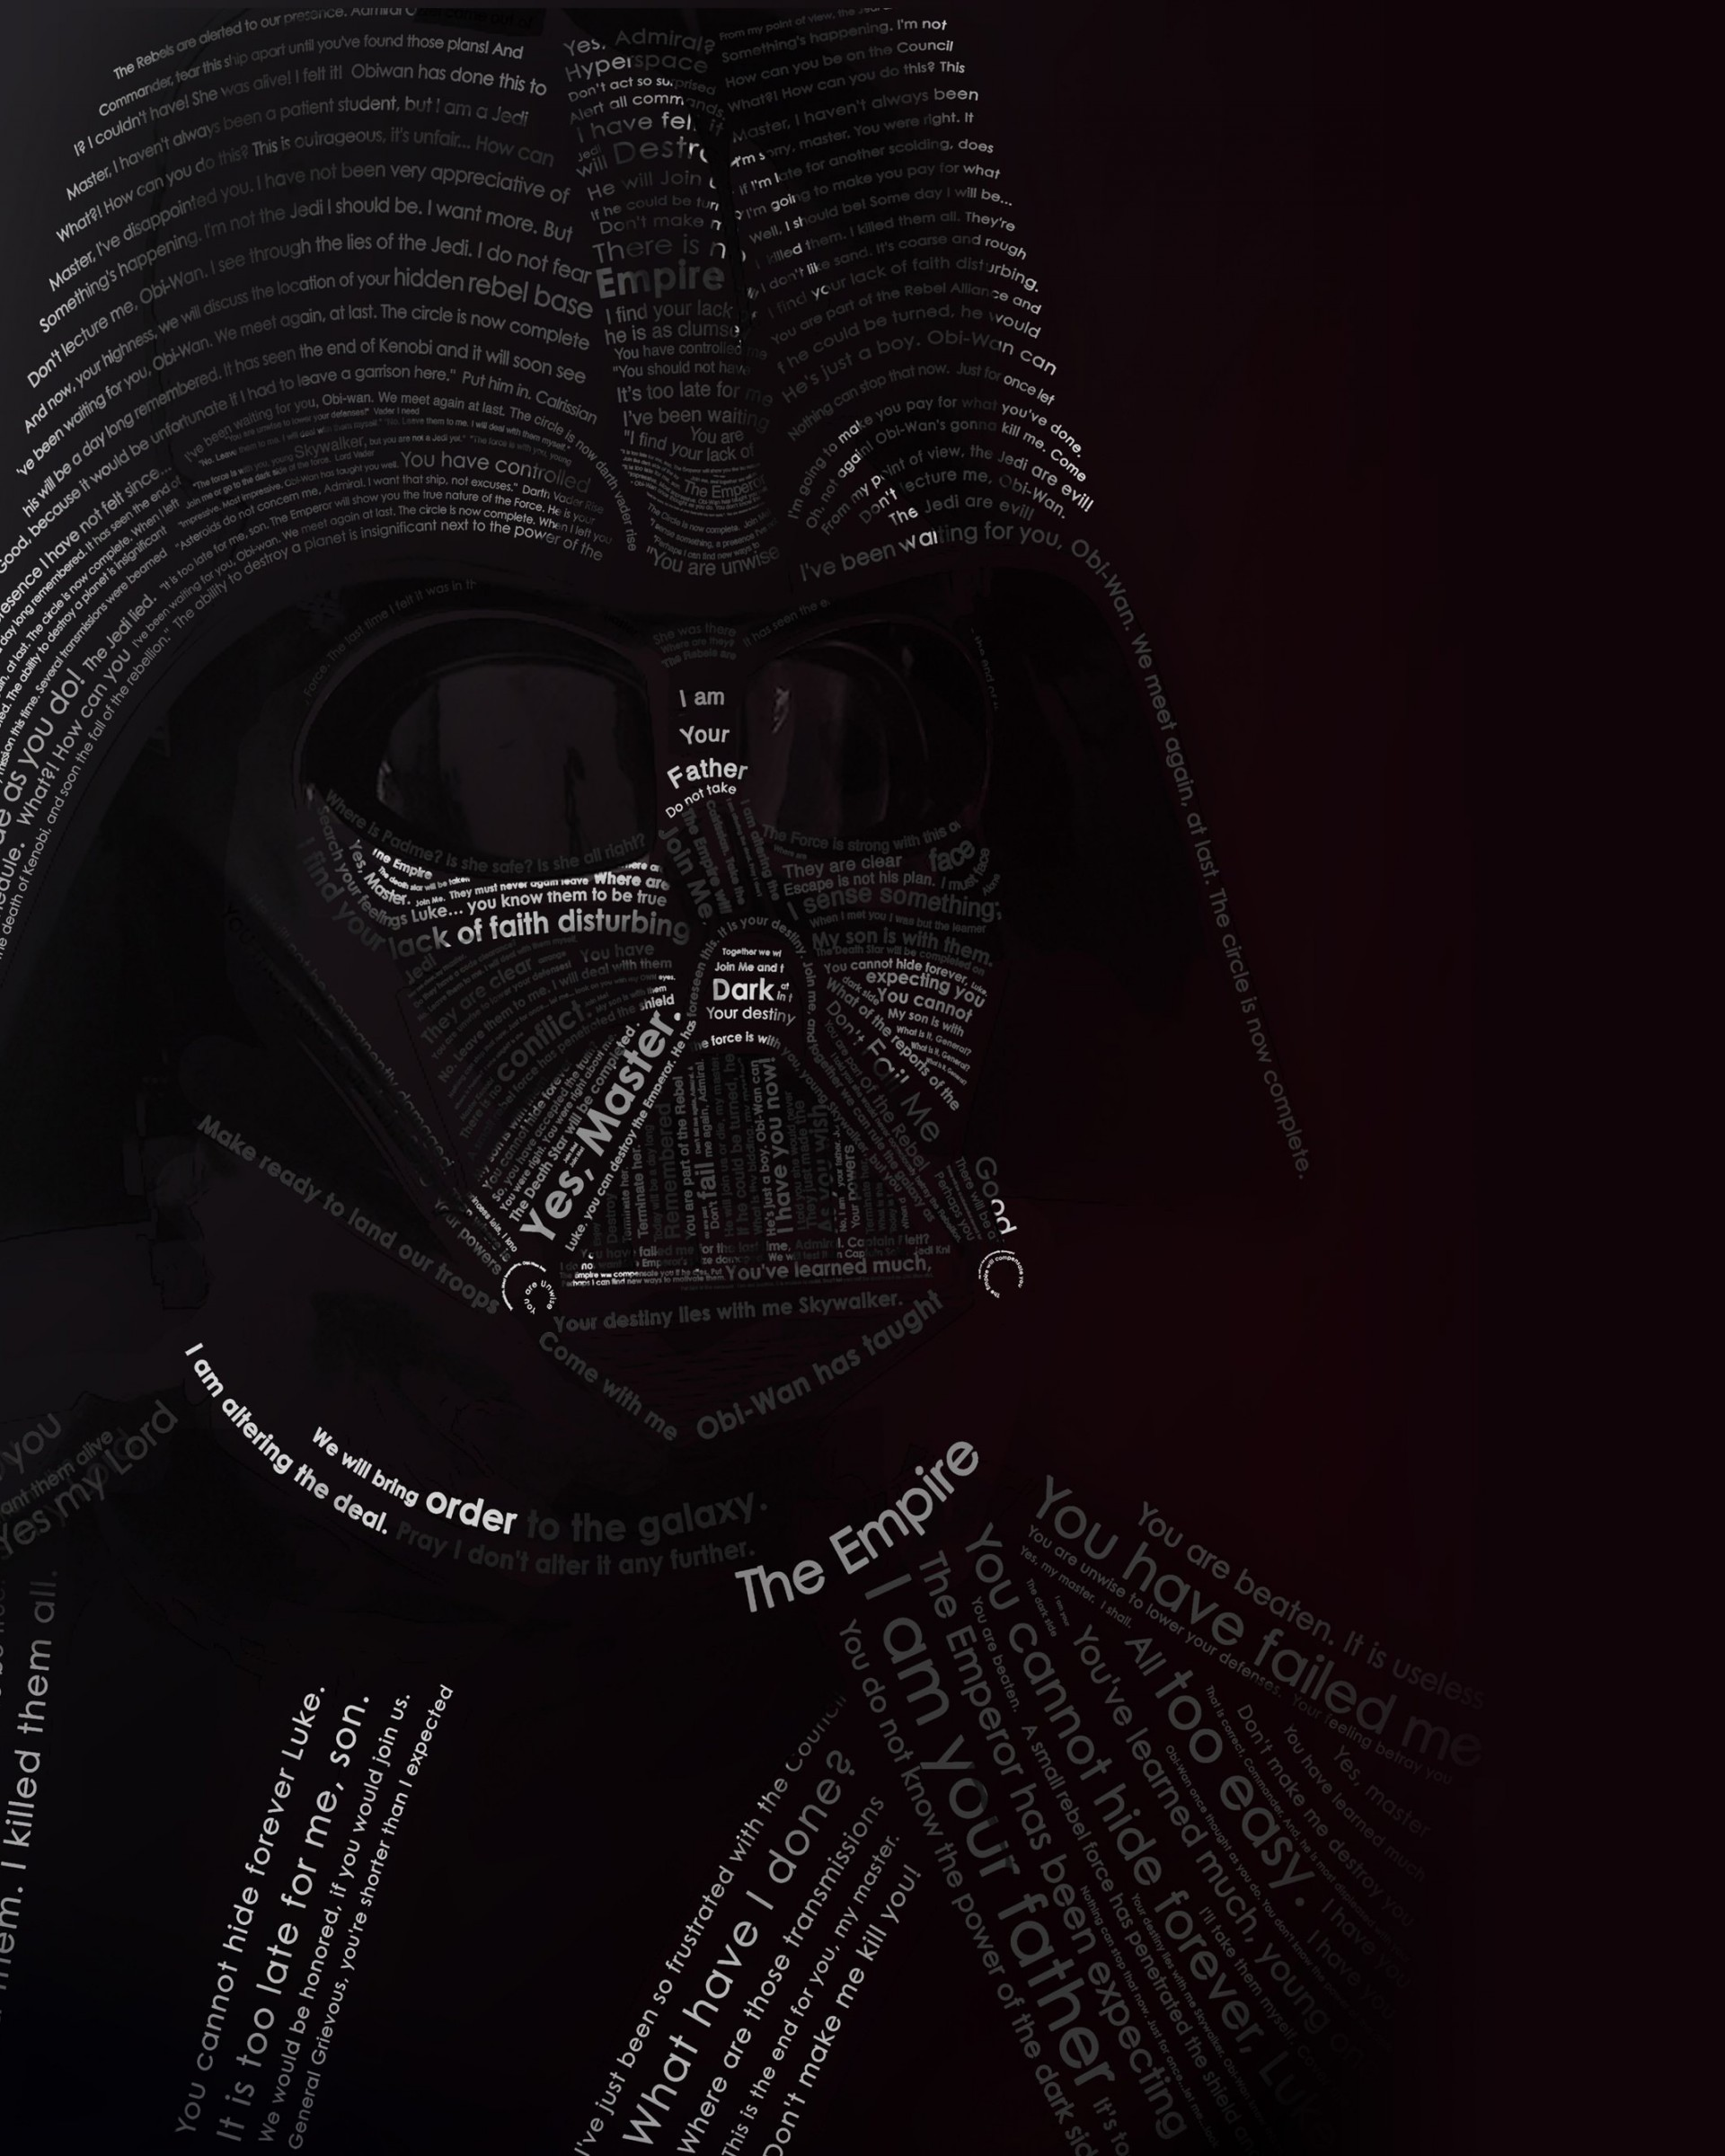 Darth Vader Typographic Portrait Wallpaper for Google Nexus 7